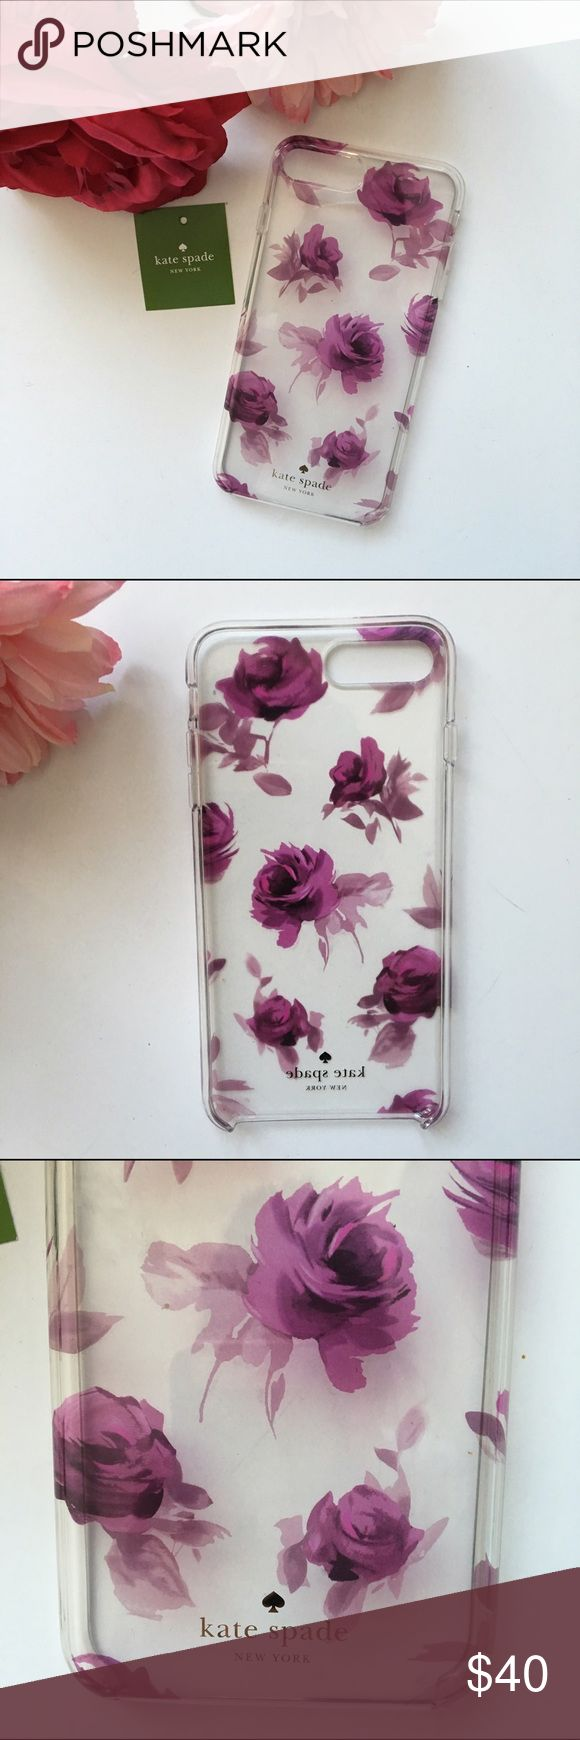 """Kate spade iPhone 7 /7 plus case- rose symphony Beautiful botanicals dance across this pretty hardshell case by kate spade new york, giving your iPhone 7 serious fresh appeal. Fits iPhone 7 2-3/4""""W x 5-1/2""""H x 1/2""""D Protective hardshell case with floral design Resin Available in iPhone 7 & 7 plus sizes. Brand new never used. Comes in new poly bag packable. kate spade Accessories Phone Cases"""